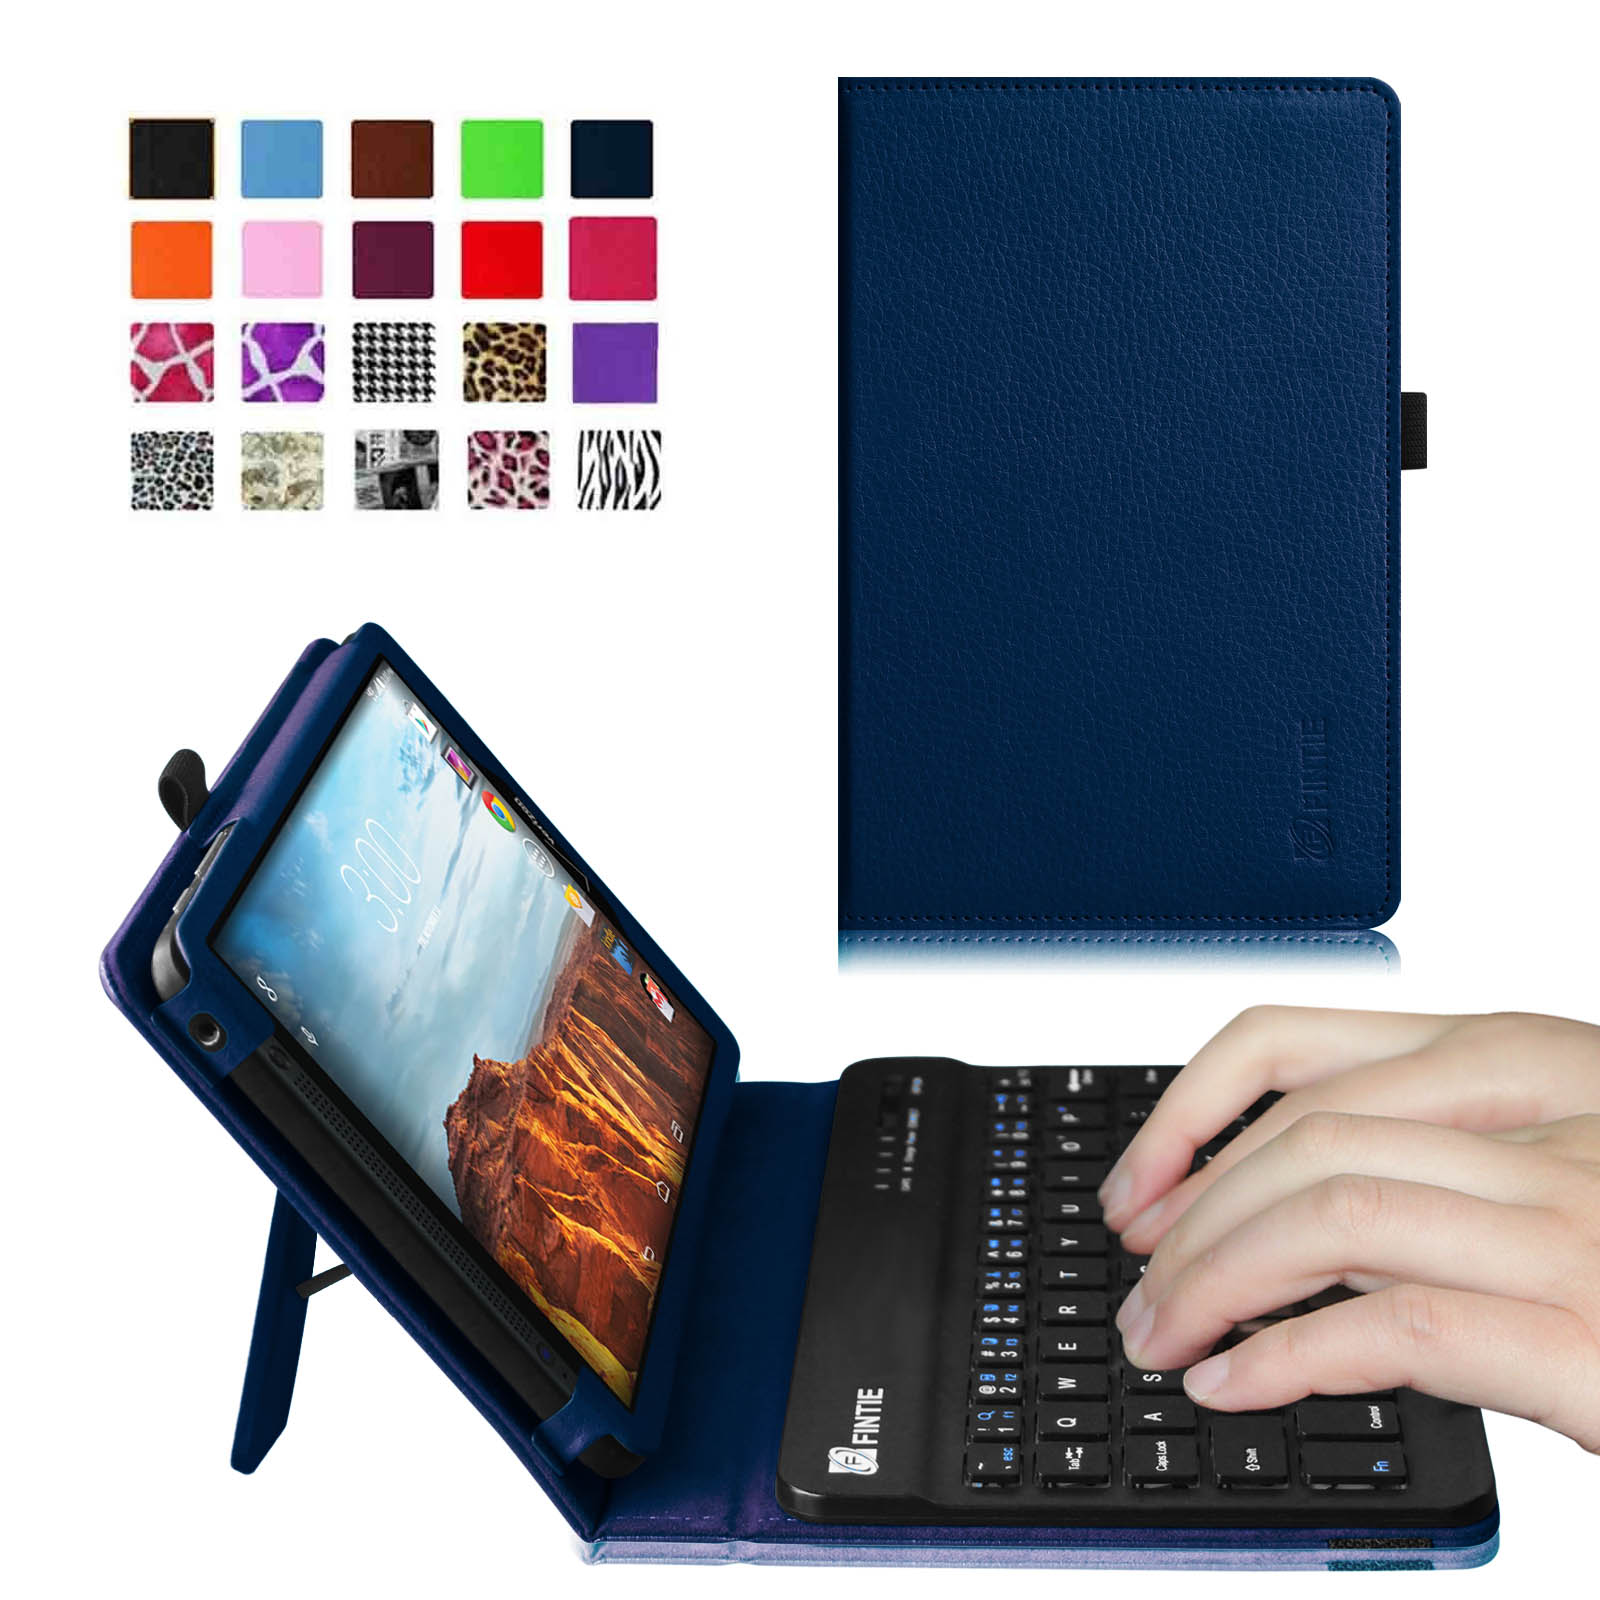 Verizon Ellipsis 8 4G LTE Tablet Keyboard Case - Fintie Slim Fit PU Leather Stand Cover with Removable Keyboard, Navy